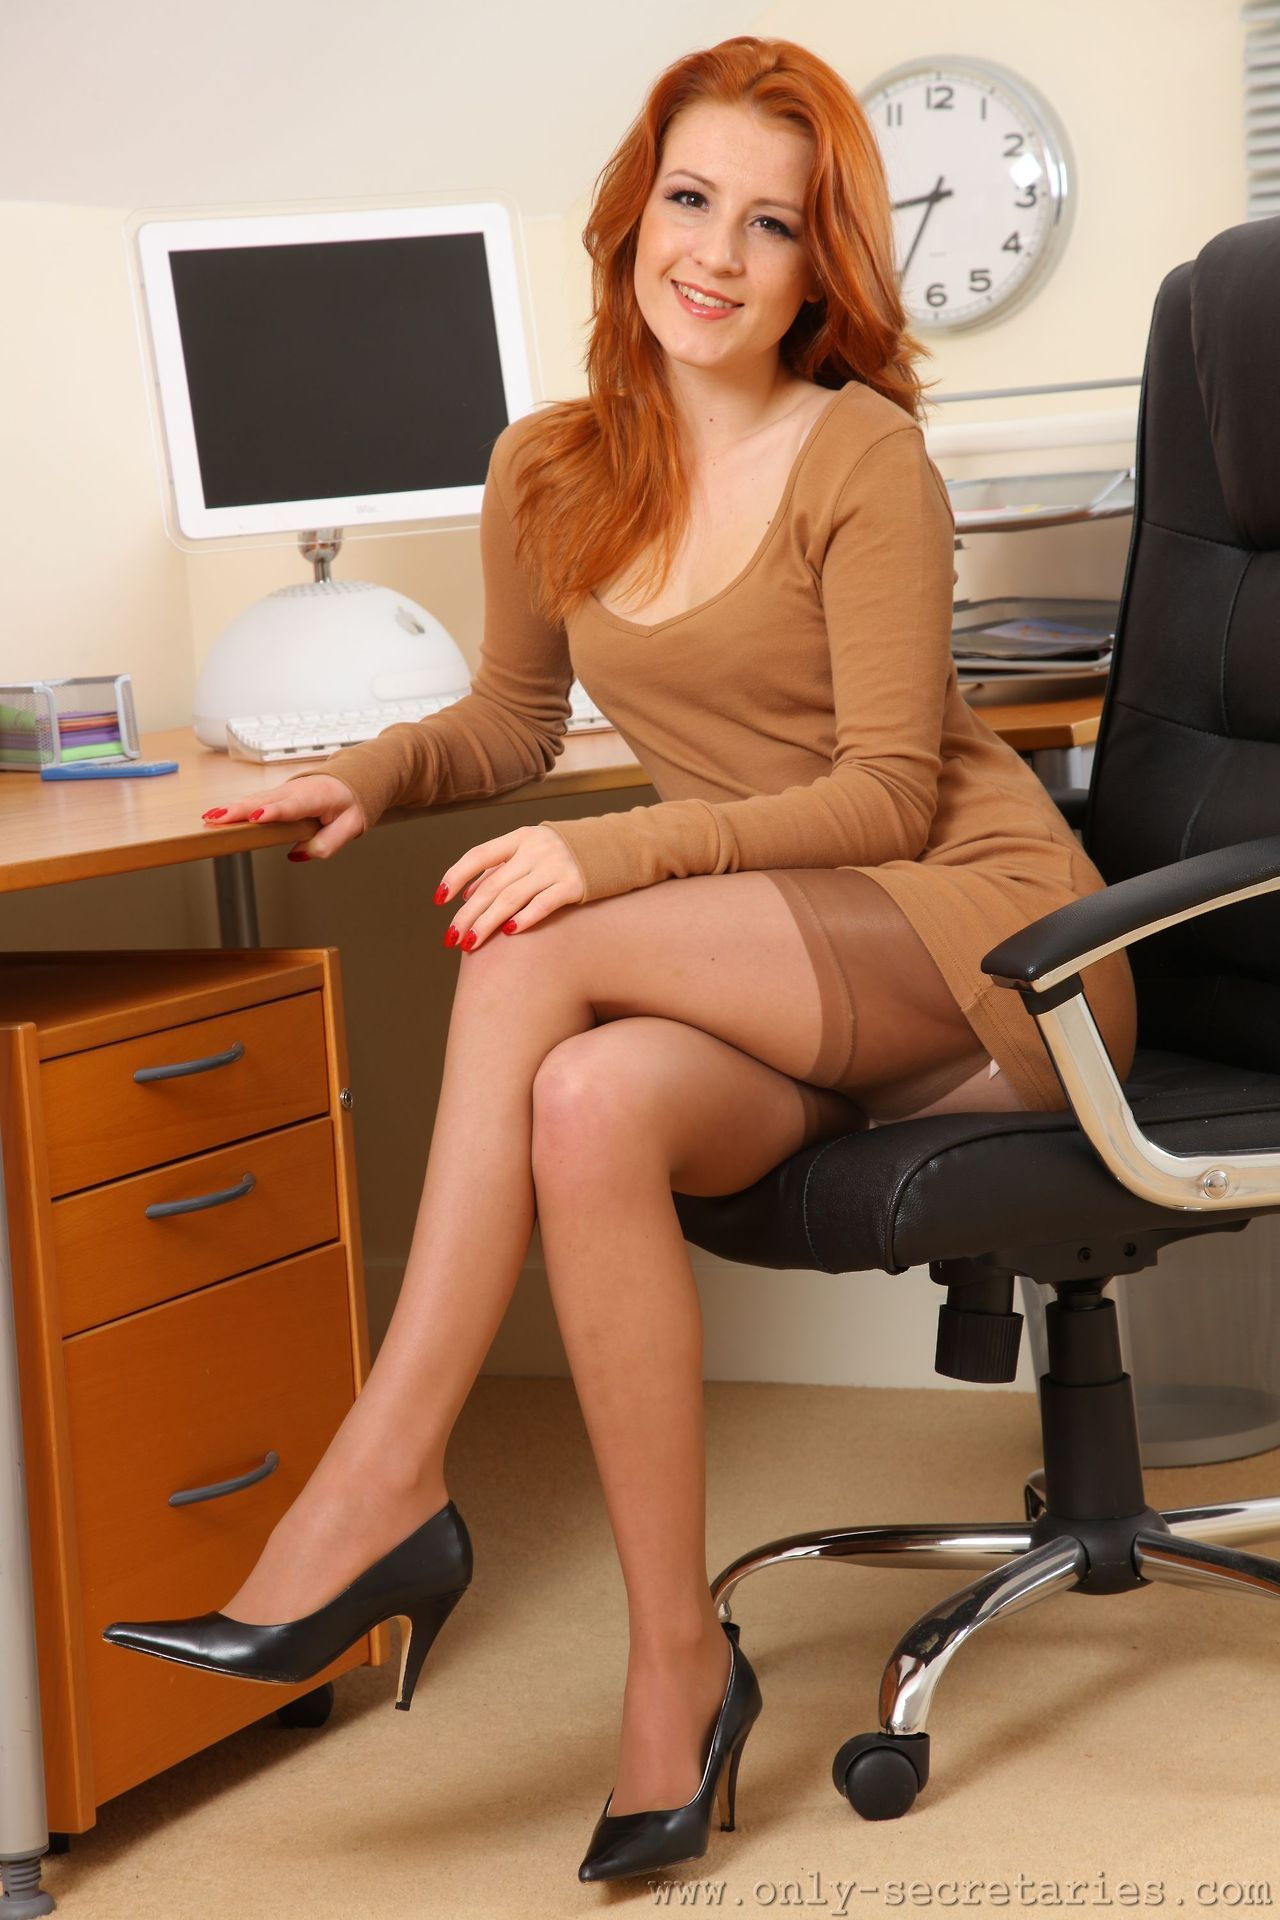 Office Girls Lesbian Hot Legs Milf Porn Chubby Asshole stockings office redhead - pics and galleries.